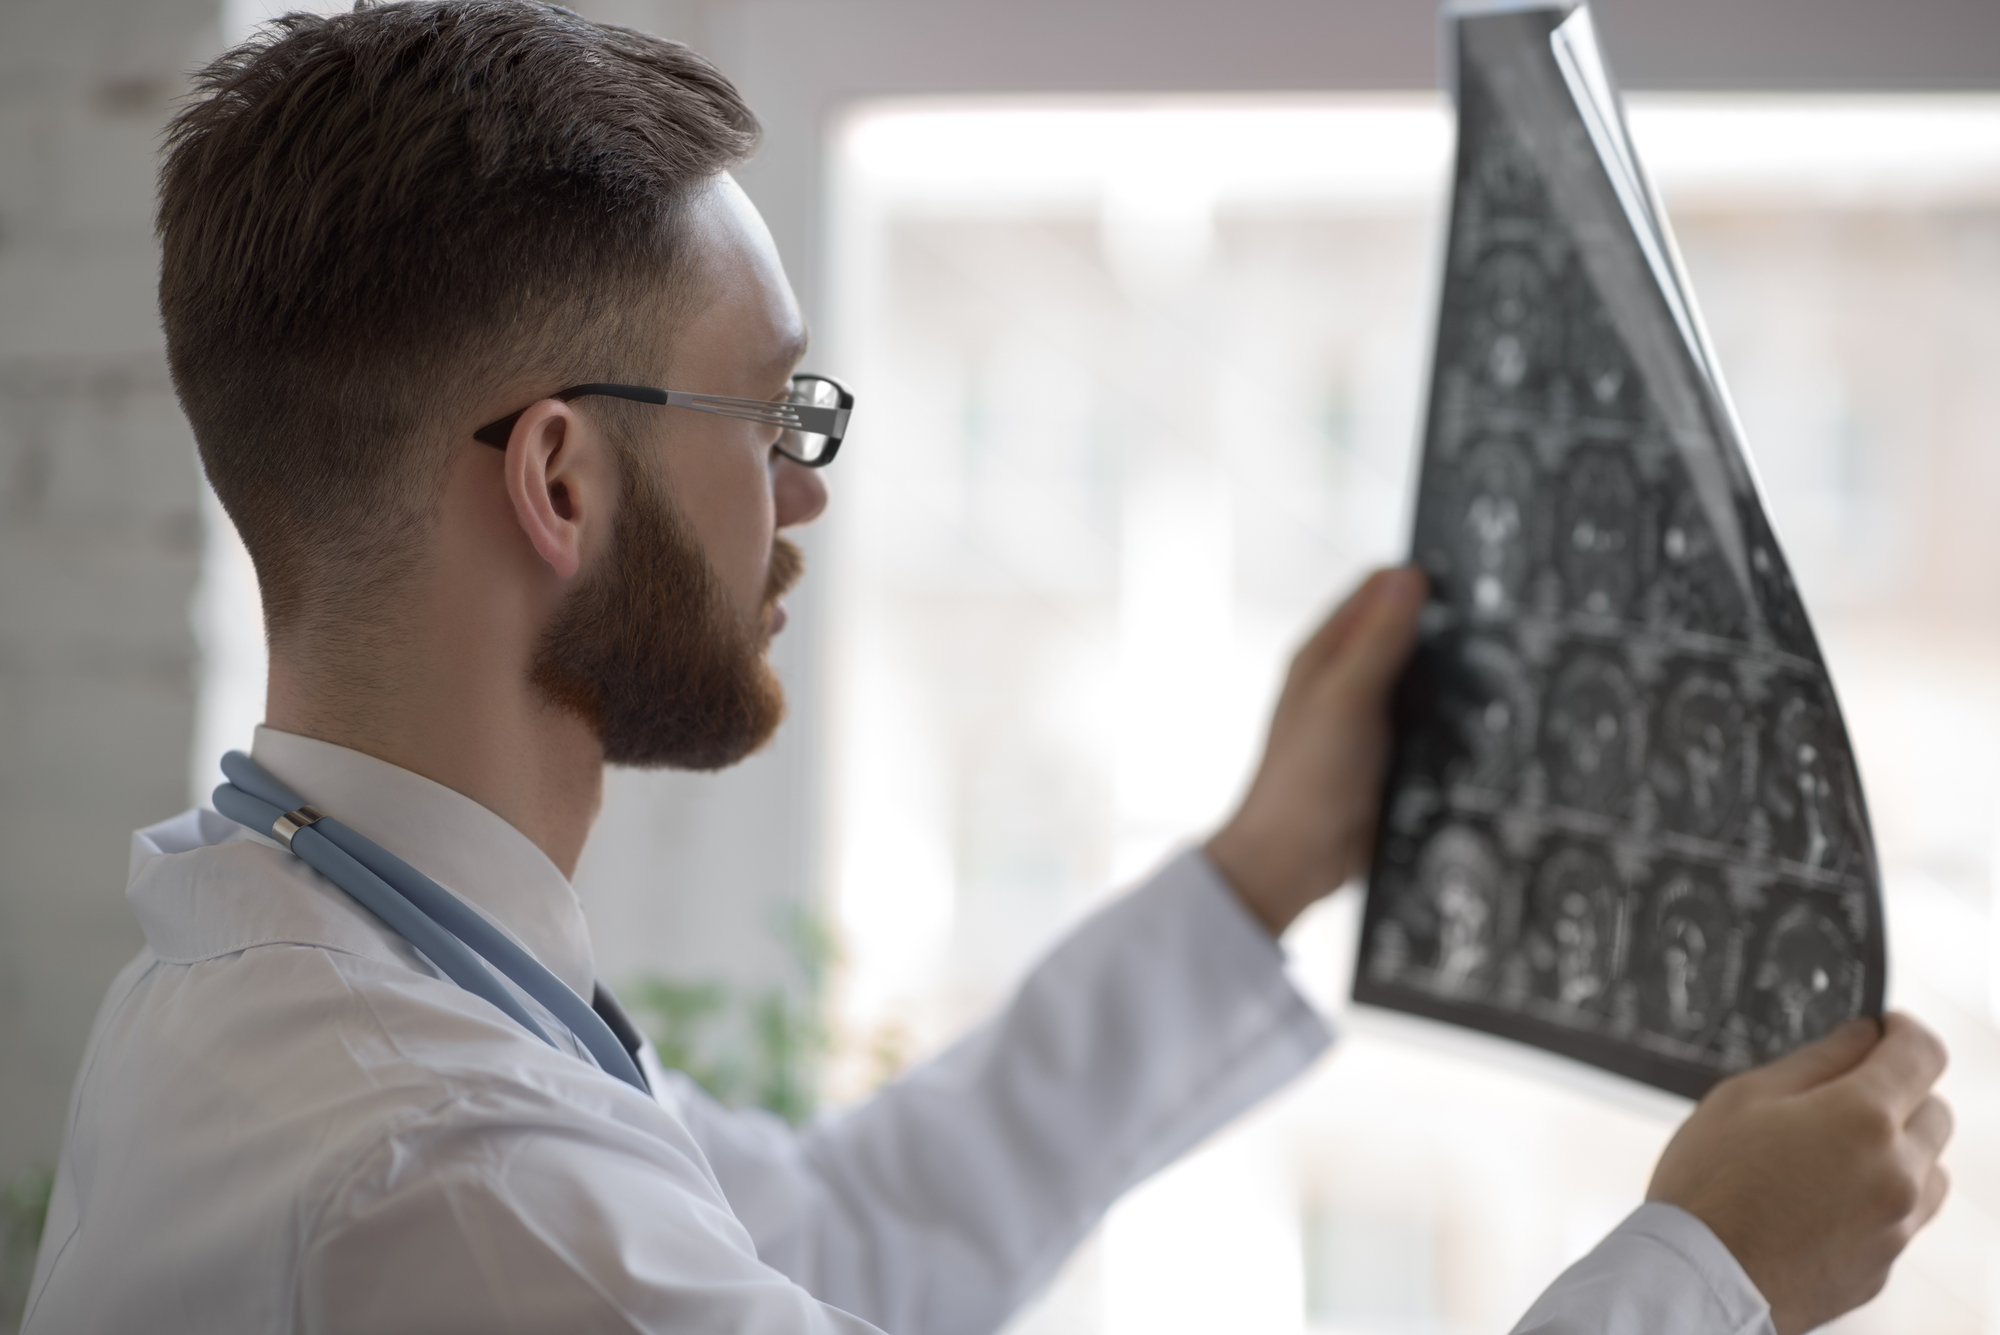 Failure to Diagnose a Disease Could be Medical Malpractice in Oregon